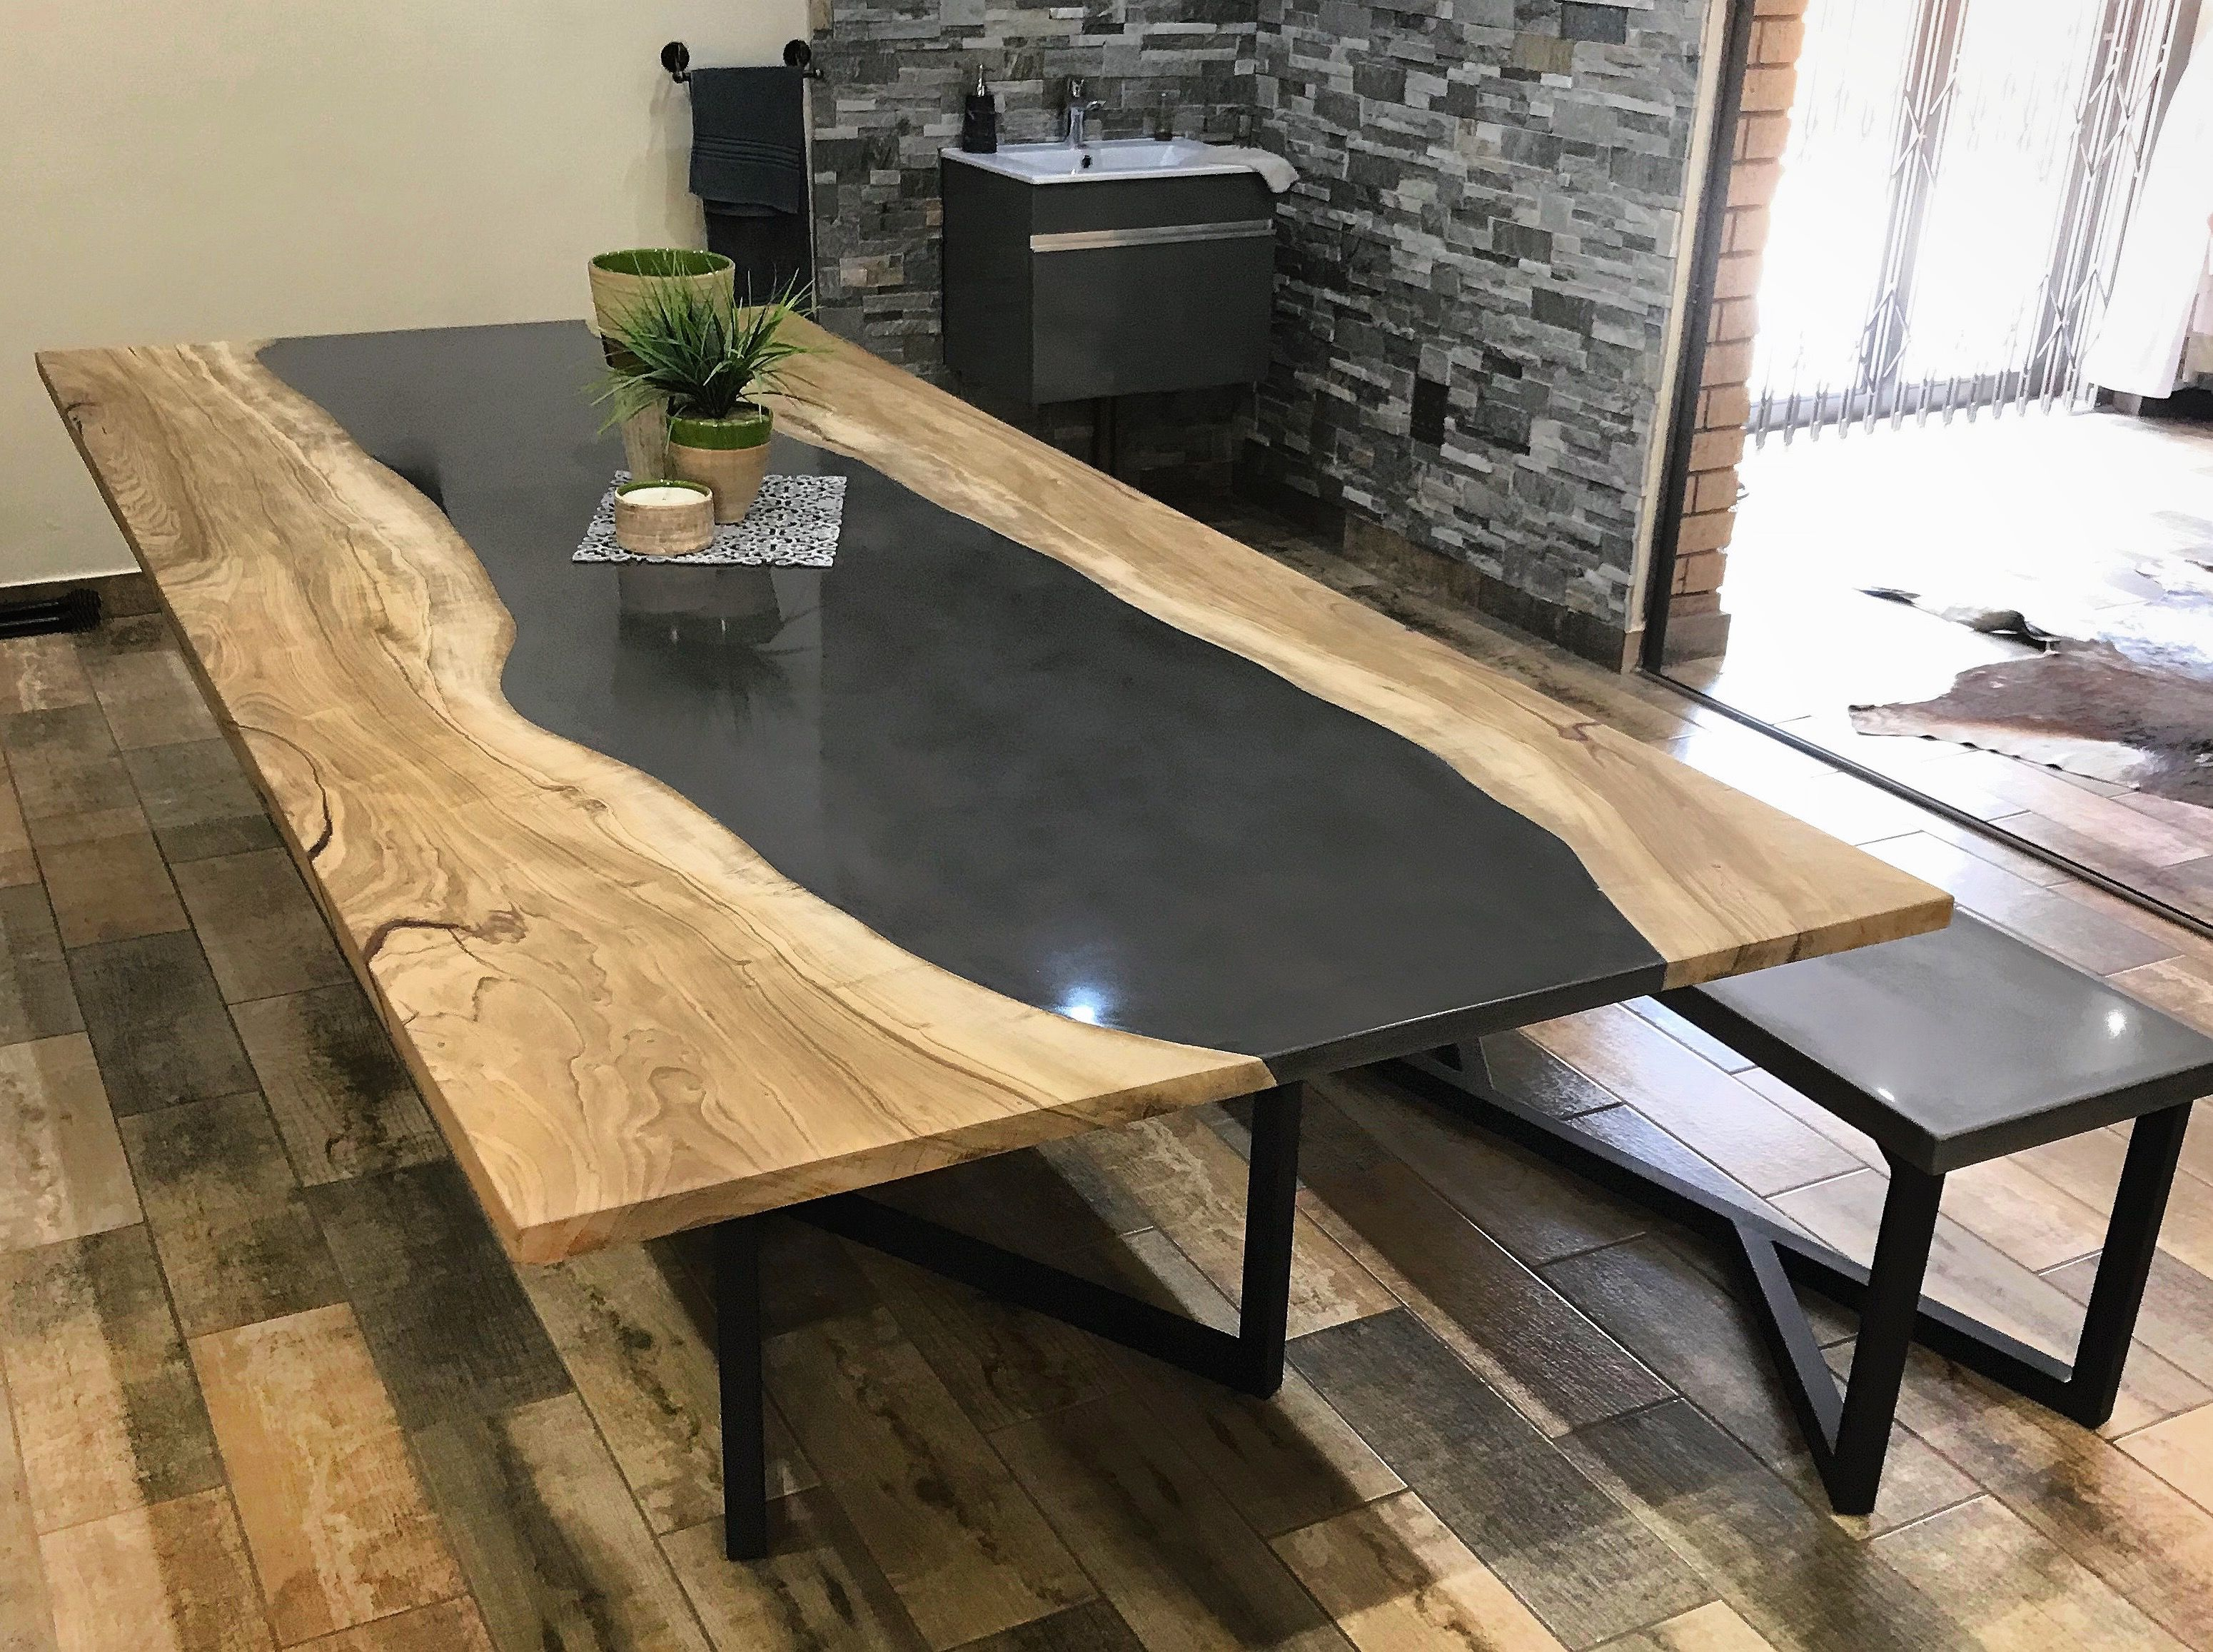 Polished Concrete And Wild Olive Wood Fused To Create A Unique